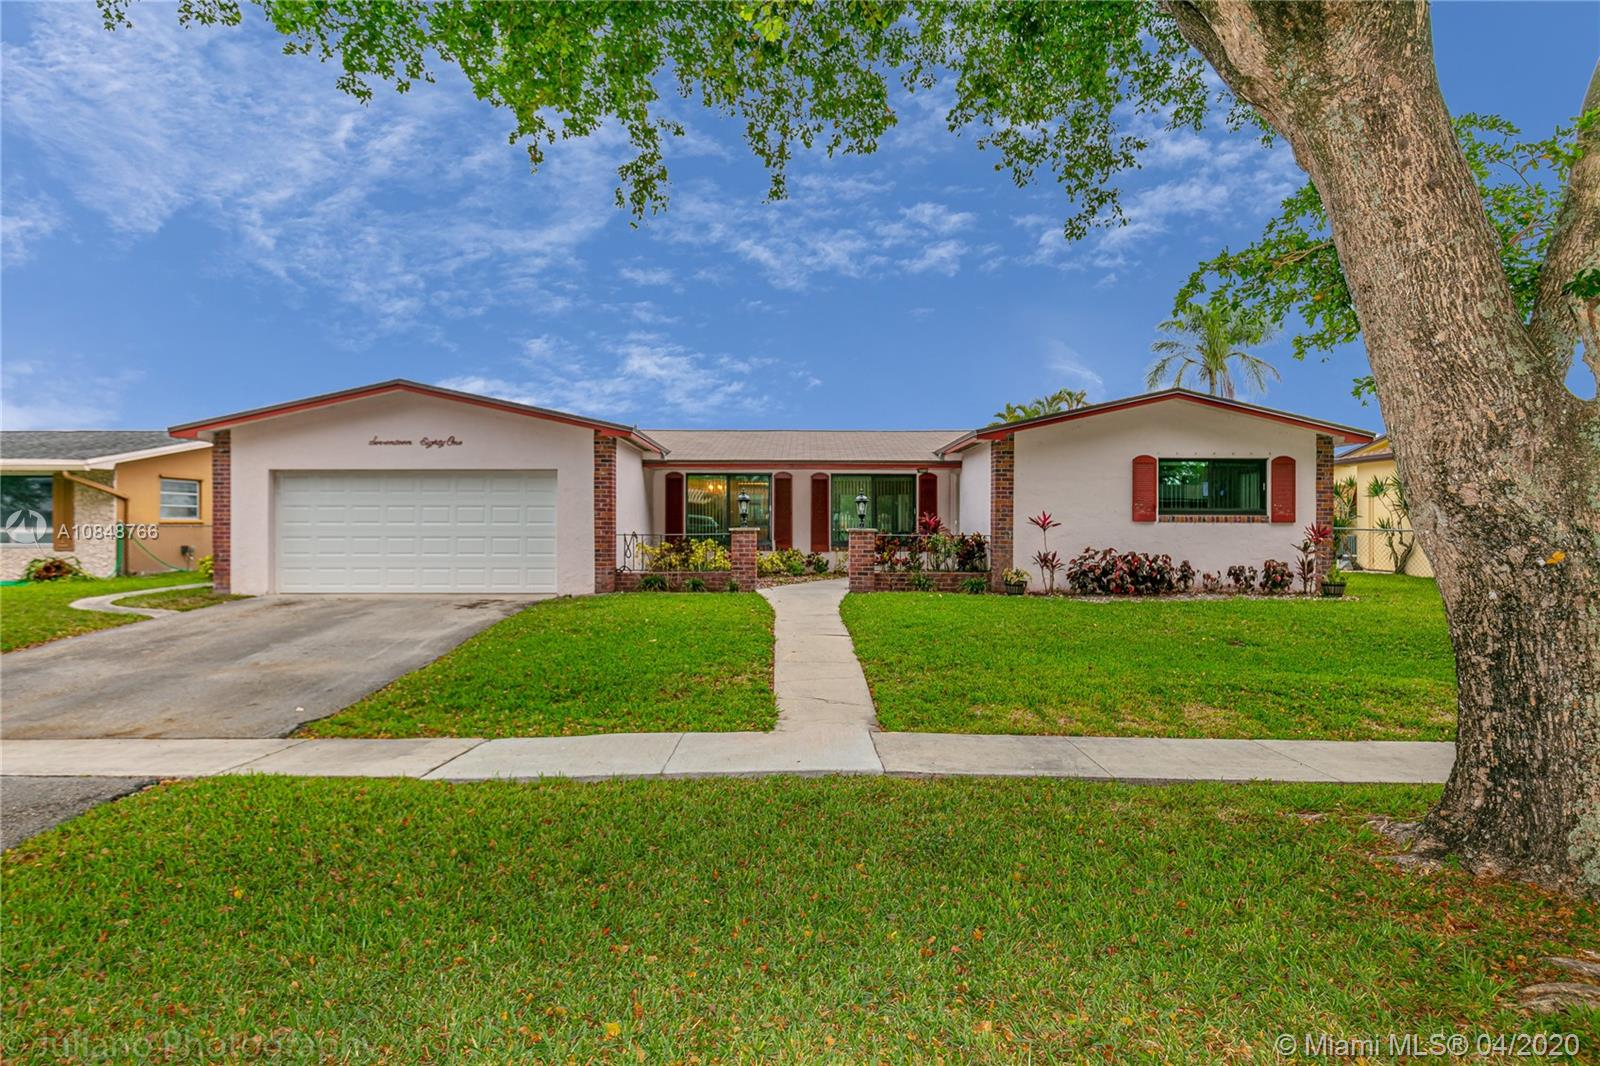 Captivating Ranch Pool Home with breathtaking lake views located in the desirable Pembroke Lakes,  this home features 3 bedrooms and 2 bath, formal dining and living area overlooking the pool and beautiful  lake.  The ample kitchen has a built-in microwave, double oven and gas stove, all appliances are under a transferable home warranty.  ROOF was recently replaced in 2017, air conditioner and water heater from 2010. Home protected with impact windows and sliding doors.   Inviting  family room with a real fire place, perfect to relax or for family gathering.